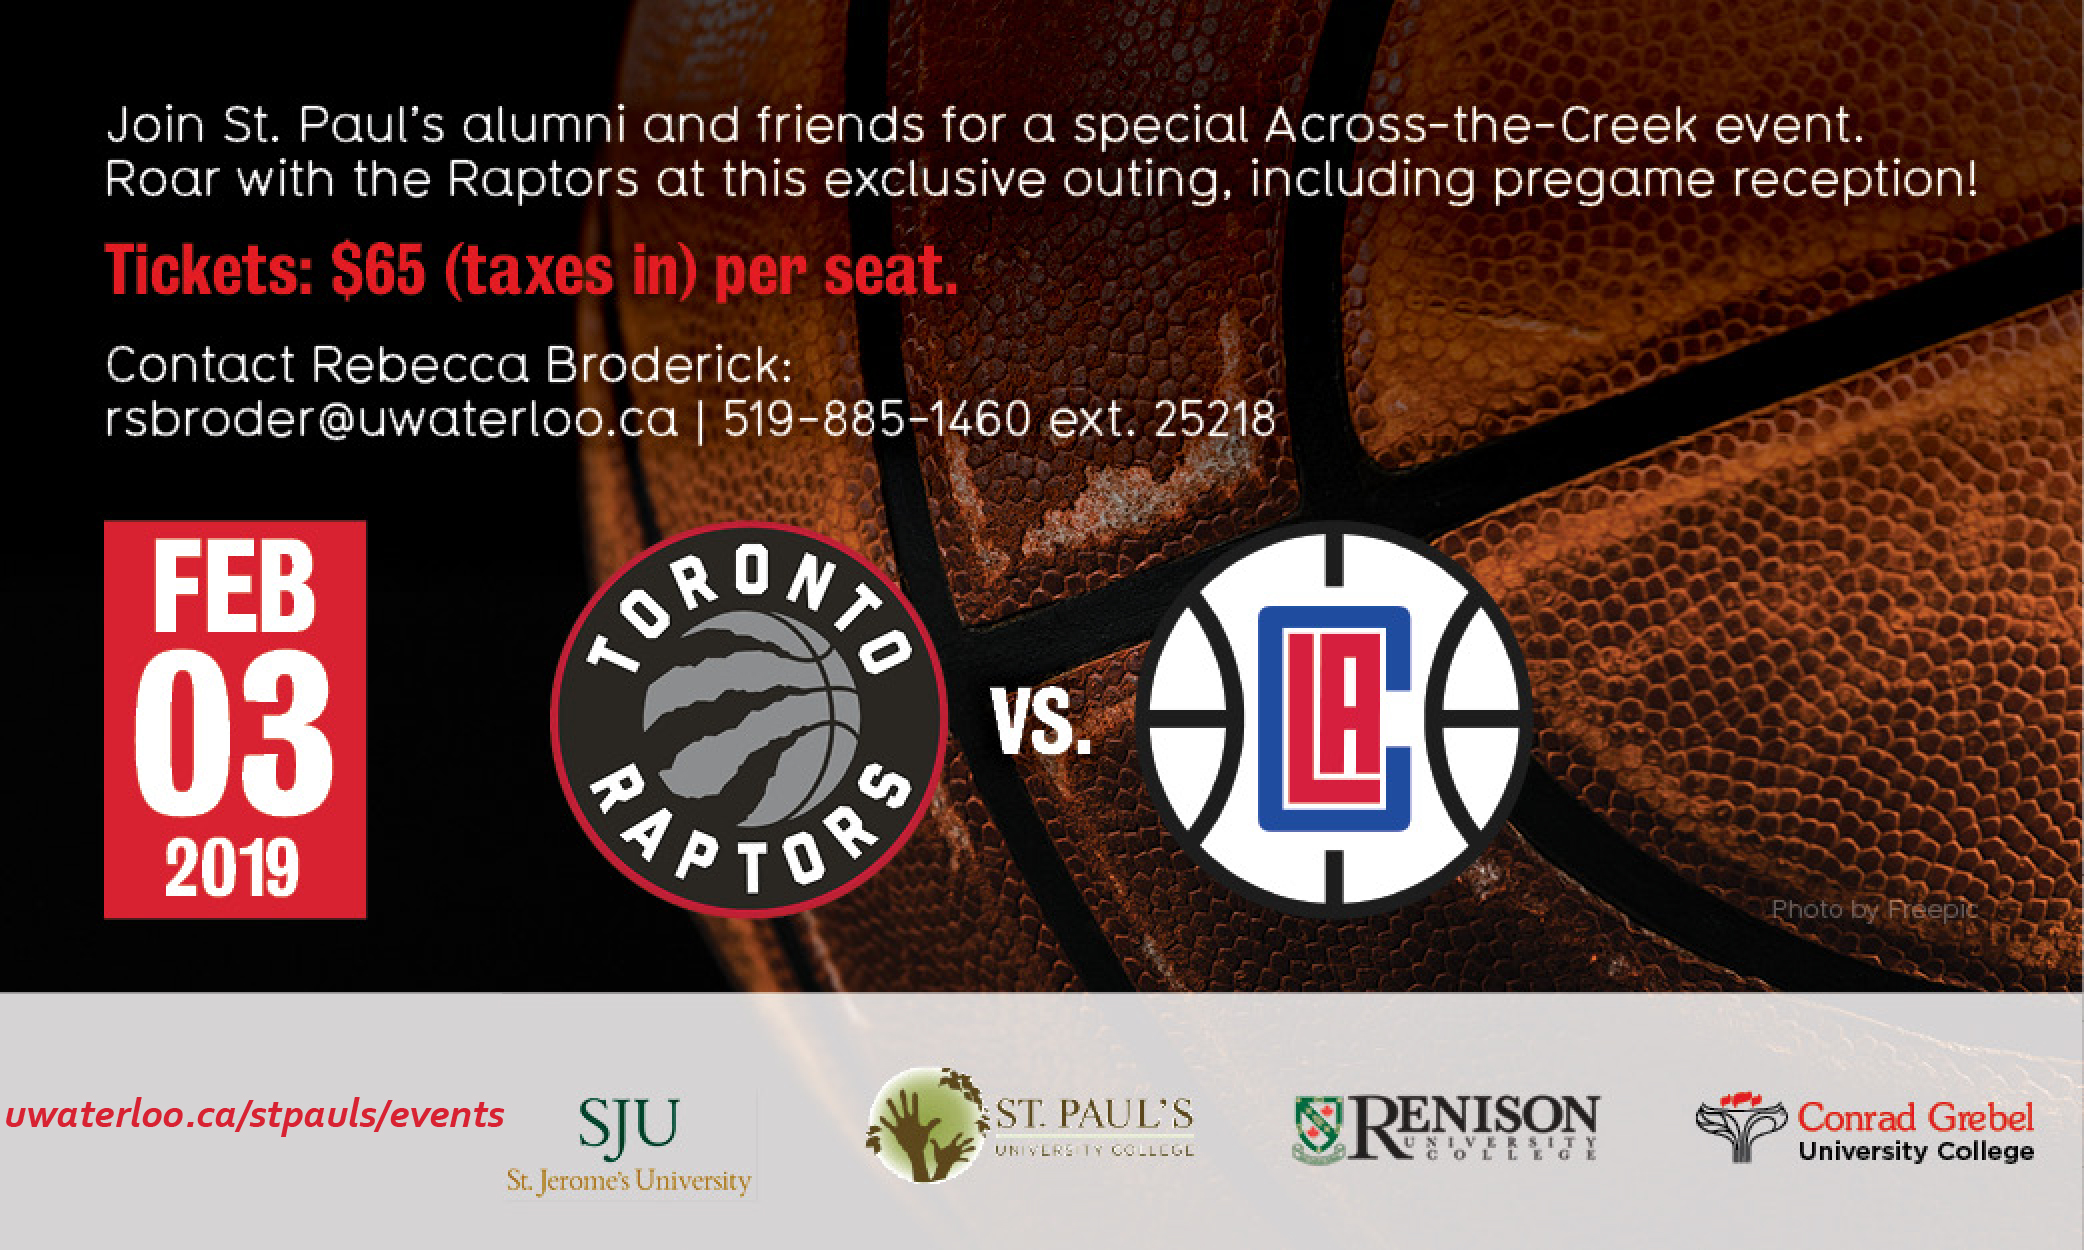 banner image advertising Raptors alumni game on February 3, 2019 versus LA Clippers